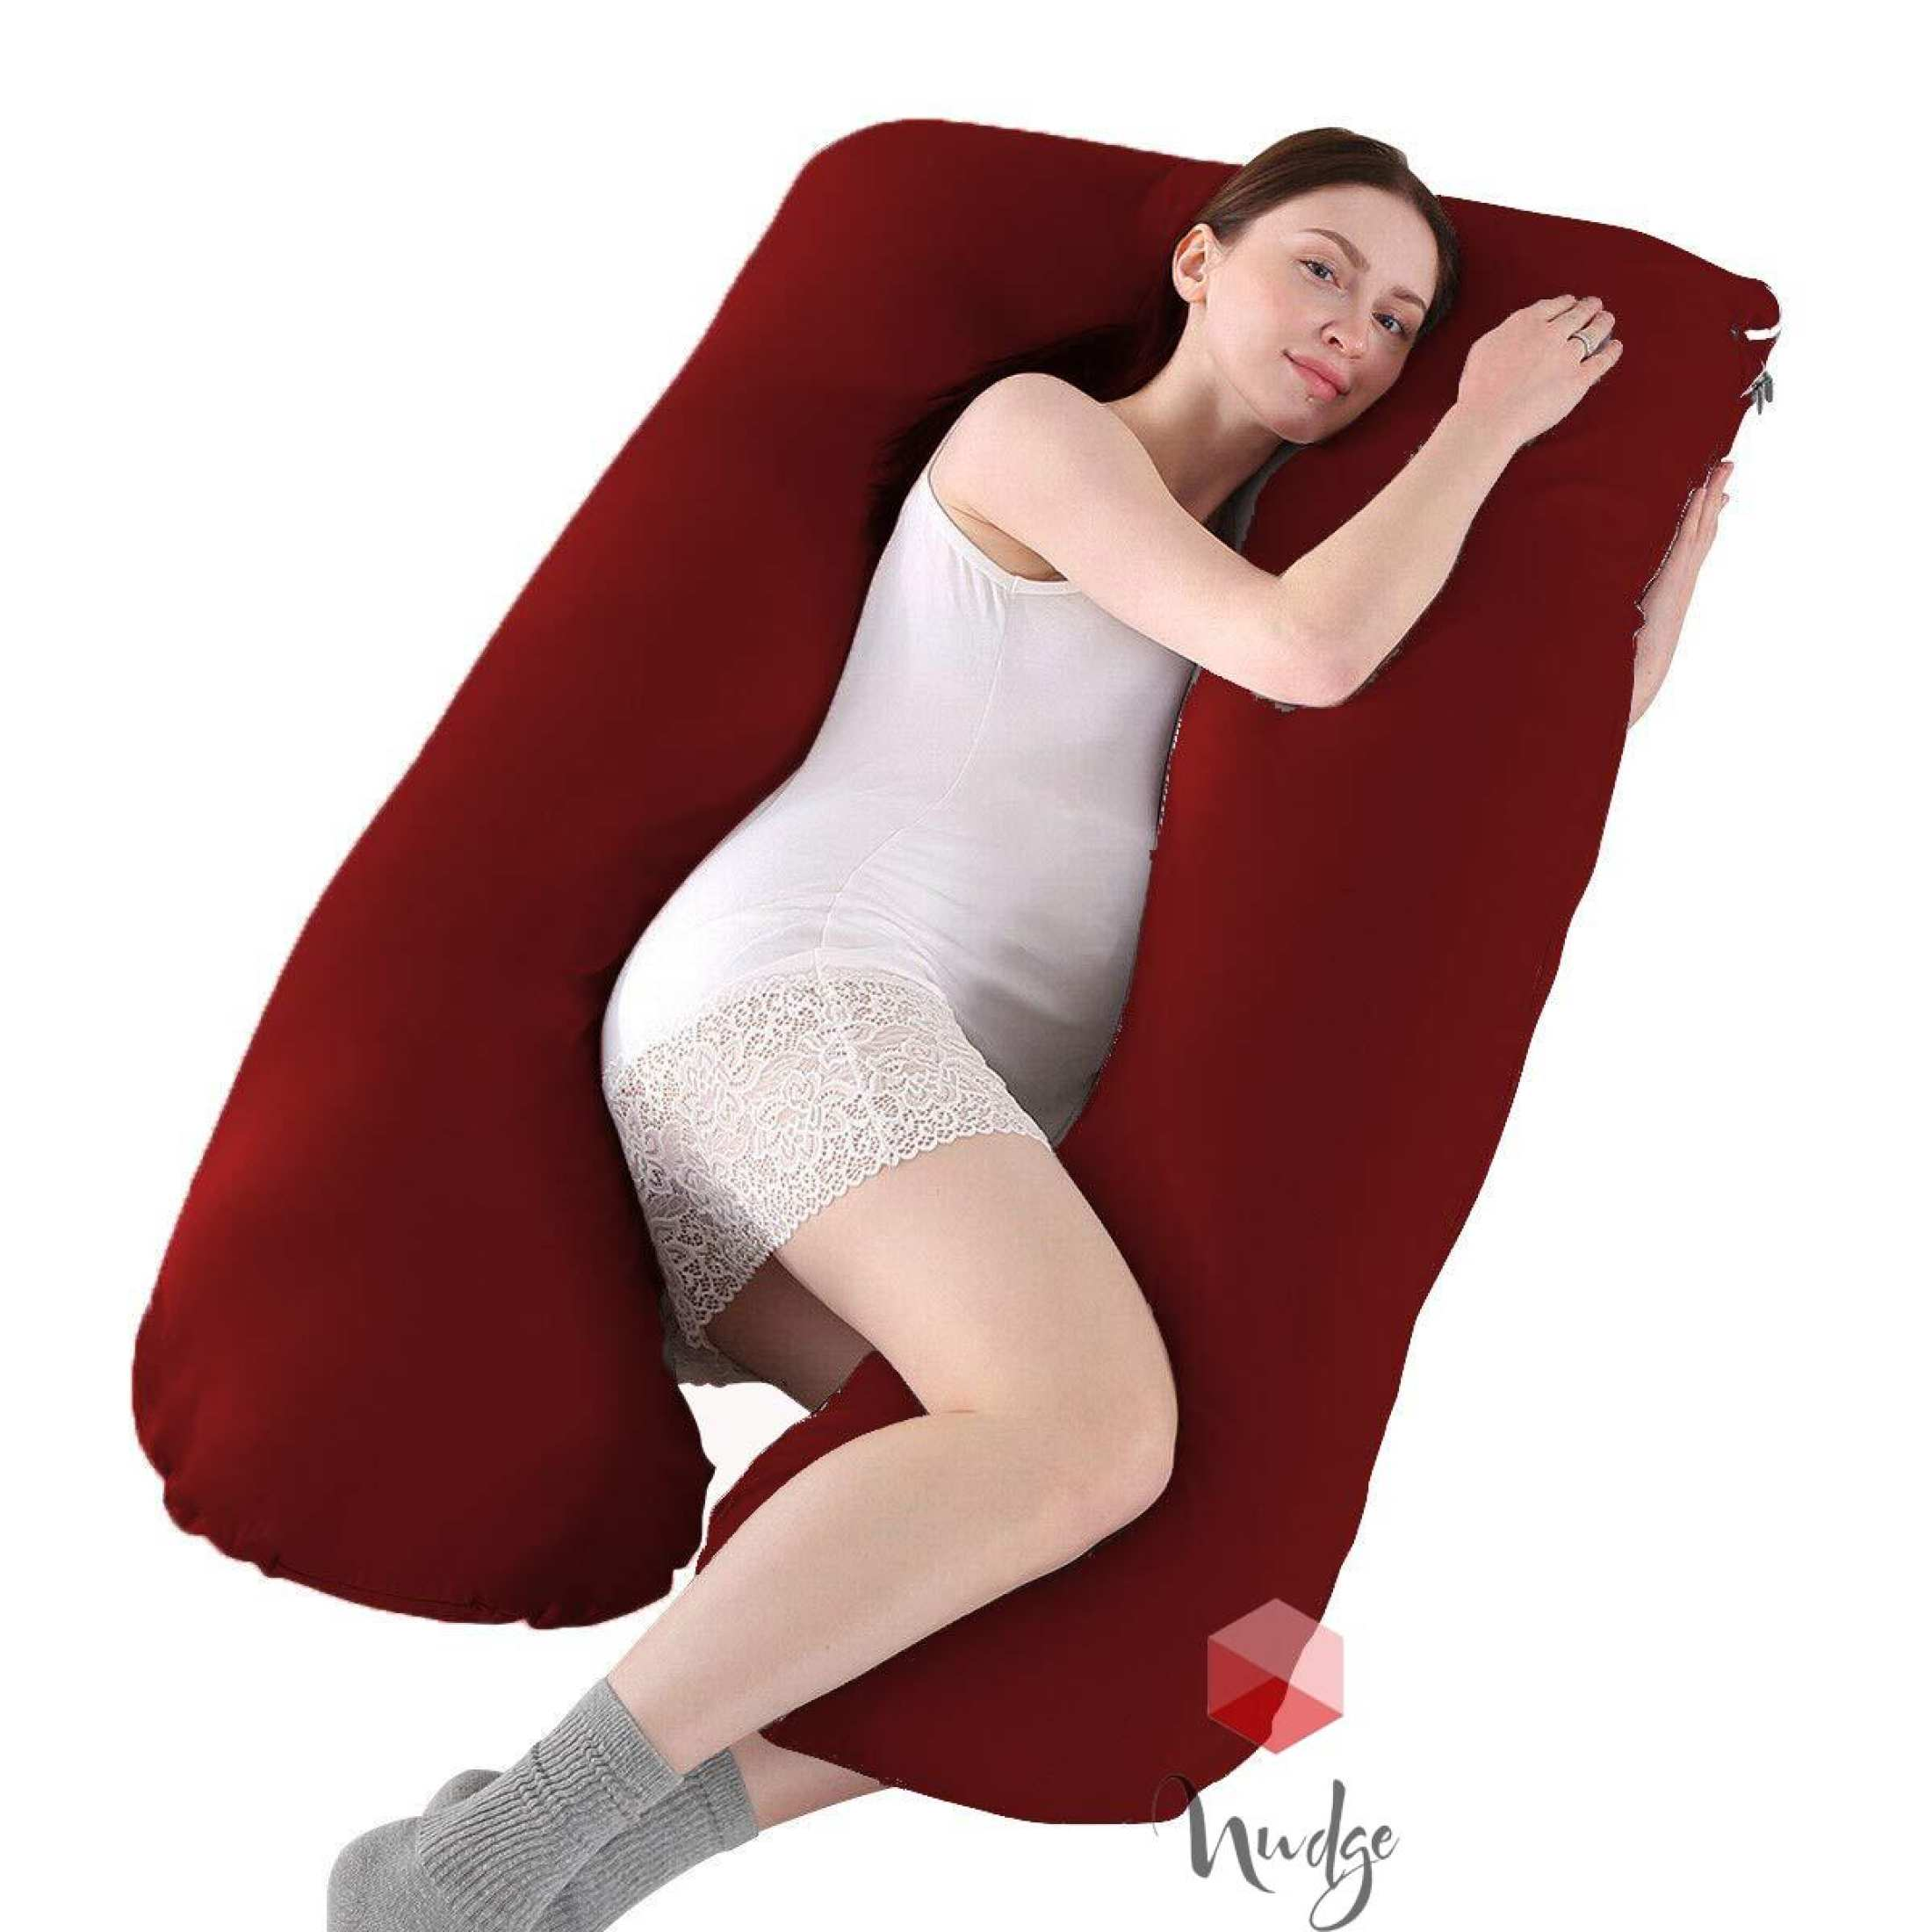 Nudge Premium Pregnancy Pillow - U Shaped Pillow With 100% Cotton Zippered Cover For Pregnant Women(Maroon)